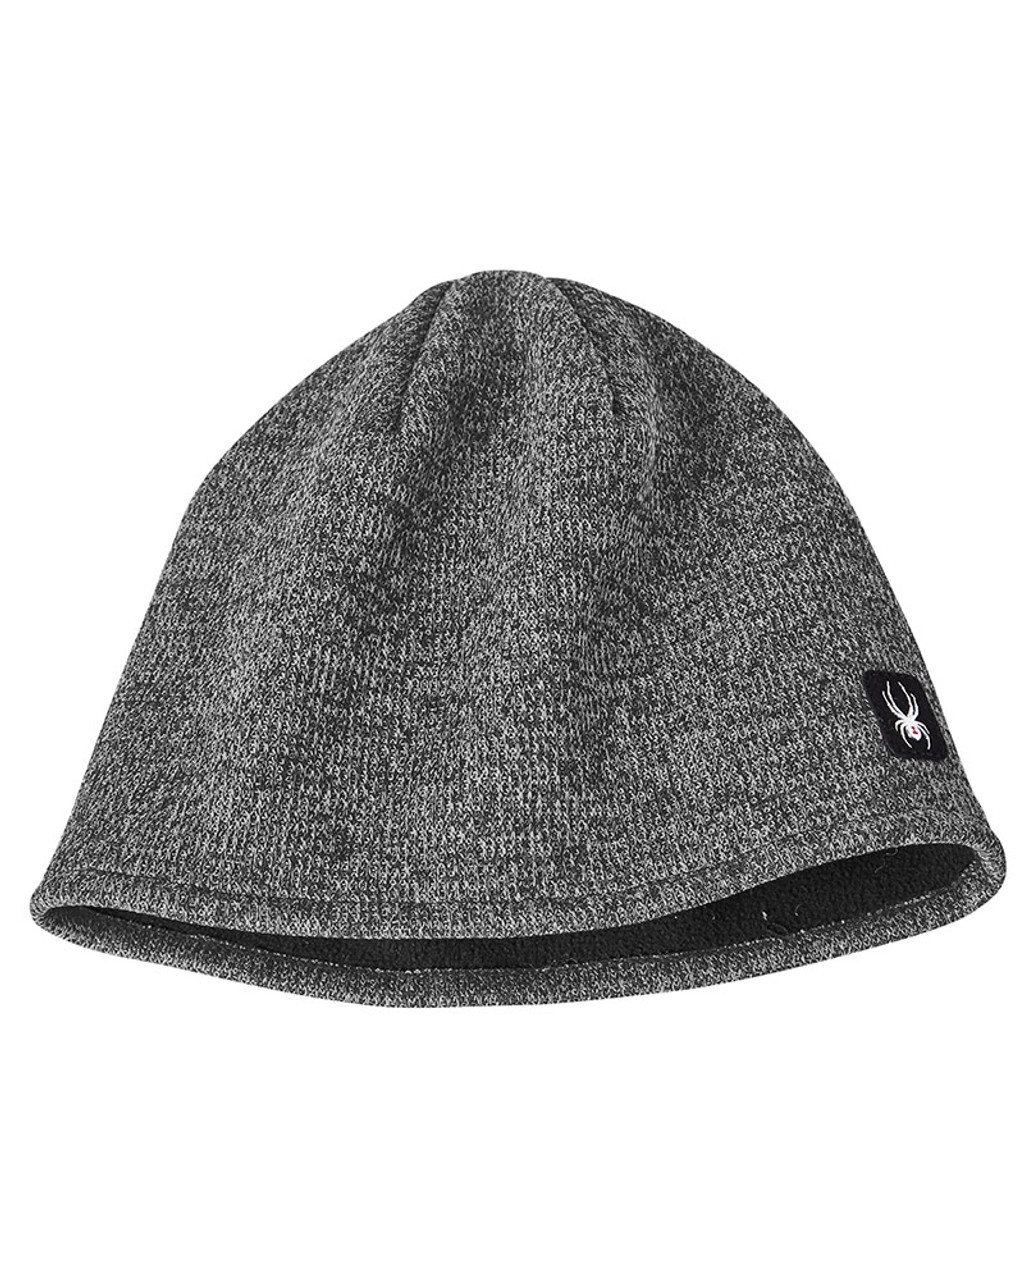 Black Heather - SH16794 Spyder Adult Constant Sweater Beanie | Blankclothing.ca